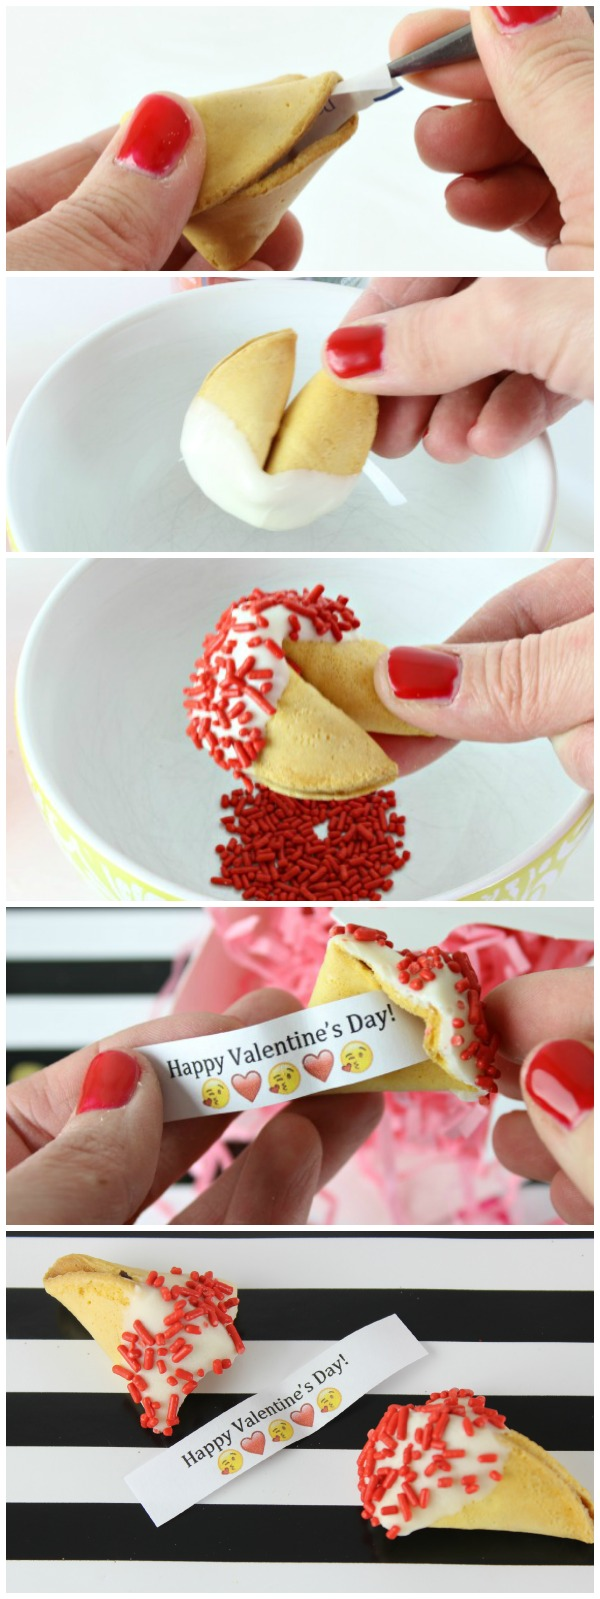 DIY Customized Fortune Cookies - Click for tutorial and tips!